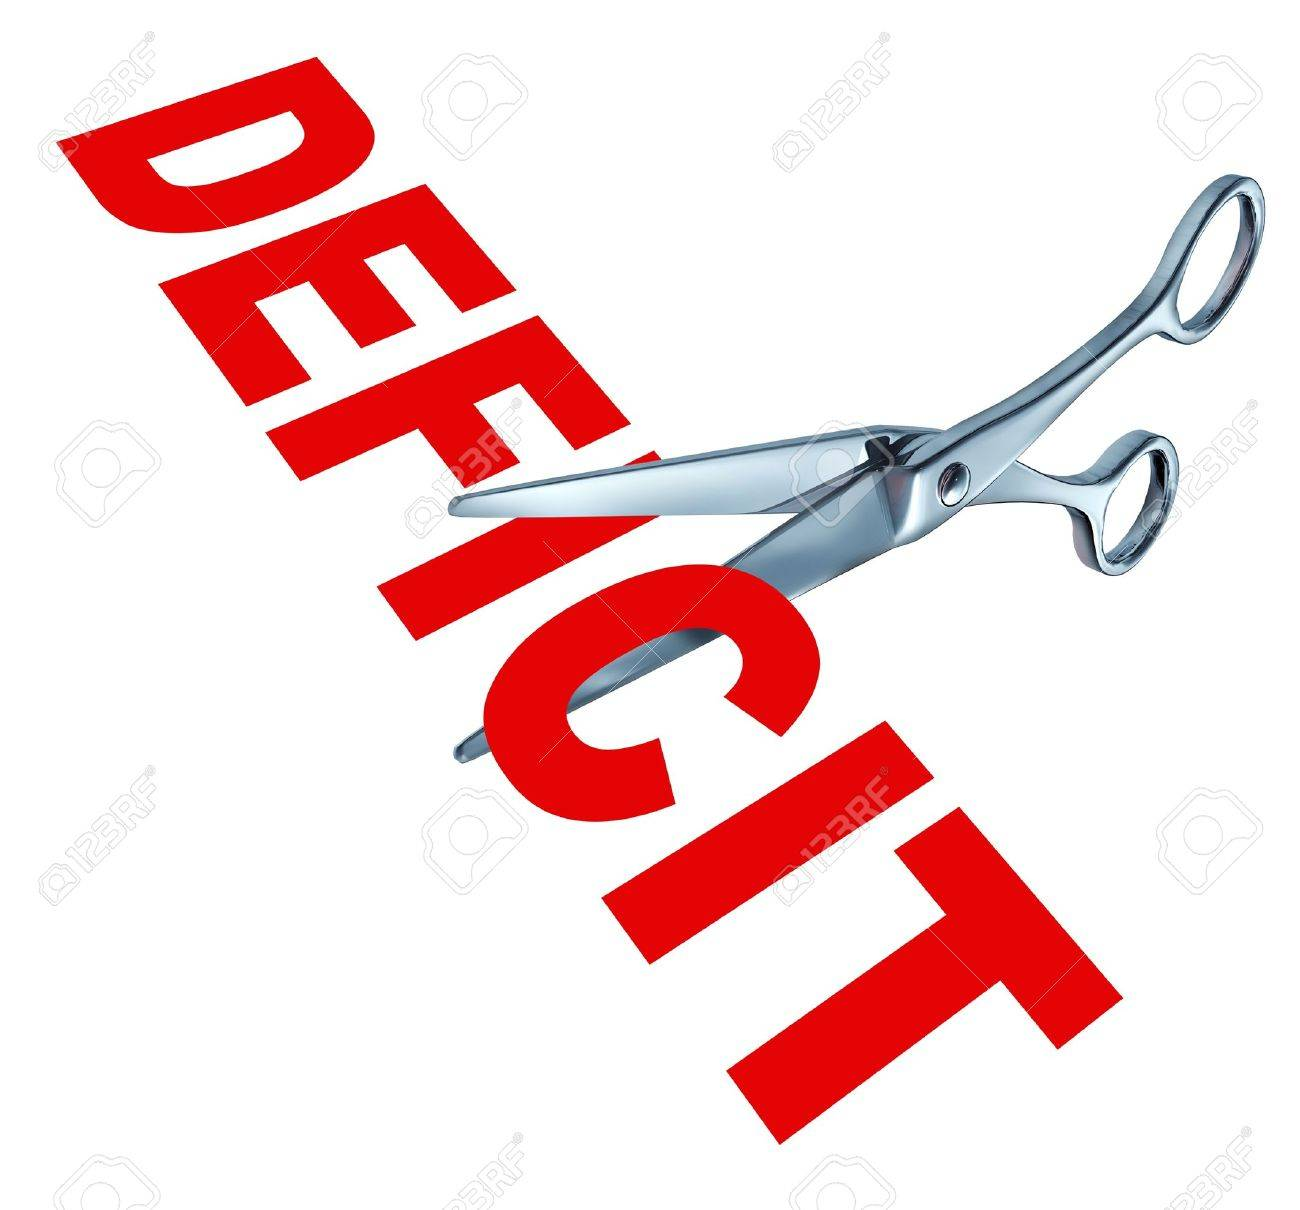 Cutting the deficit to balance the government financial budget due to the recession and other public debt crisis represented by open sharp scissors. Stock Photo - 10792809